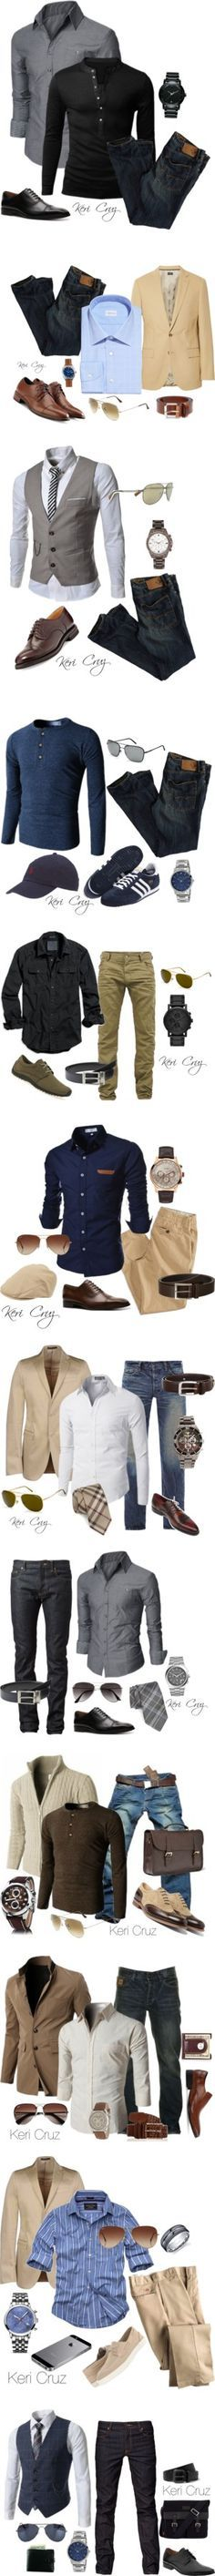 new style by christopher-howard on Polyvore featuring Doublju, American Eagle Outfitters, Mercanti Fiorentini, Movado, J.Crew, Ermenegildo Zegna, Cole Haan, Shinola, Comme des Garçons and Ray-Ban